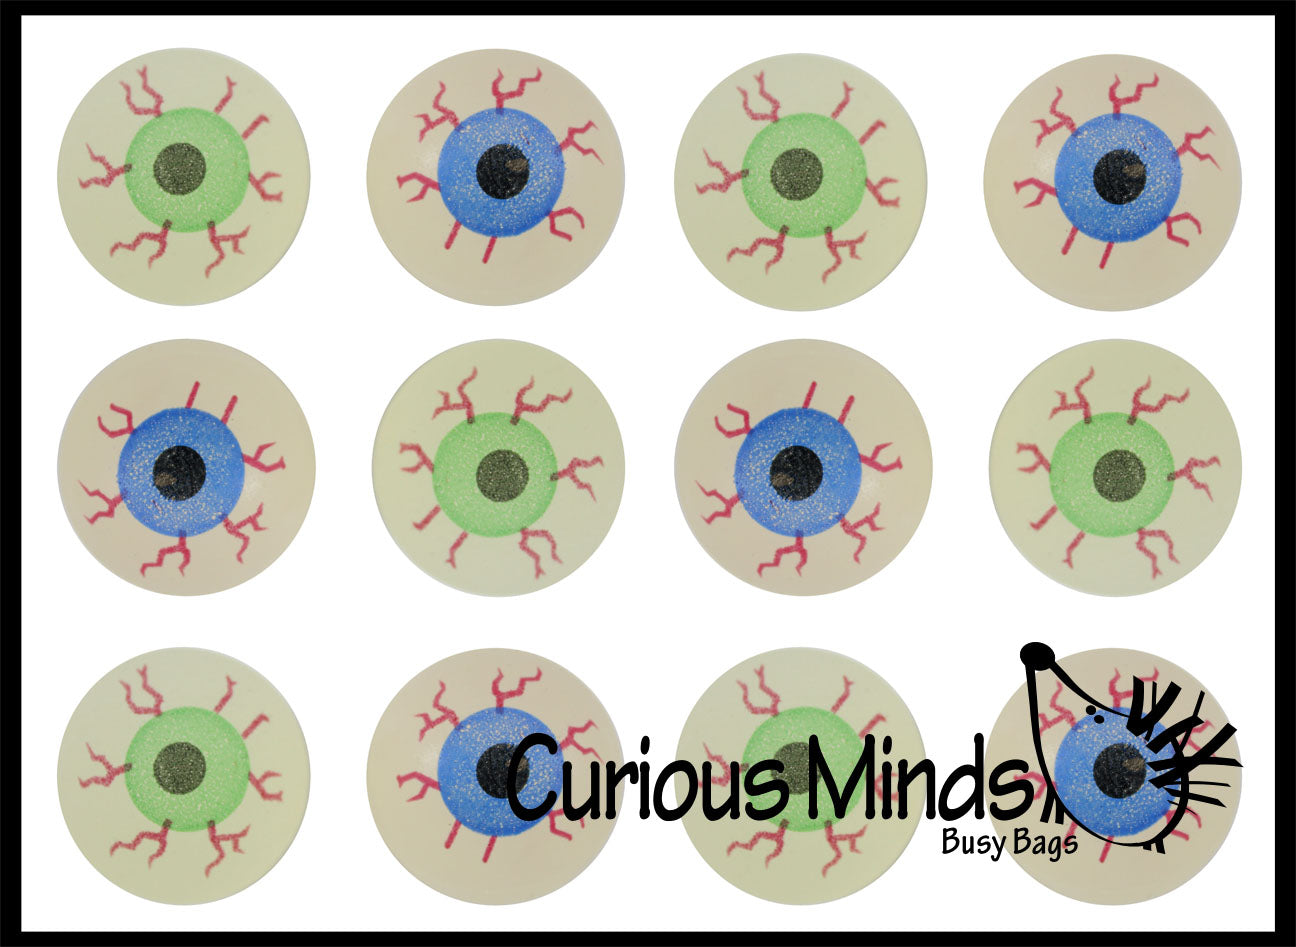 Eye Glow in The Dark Super Bouncy Balls - Spooky Eyeball Novelty Party Favor Toy Halloween, ophthalmologist, Optometry Anatomy